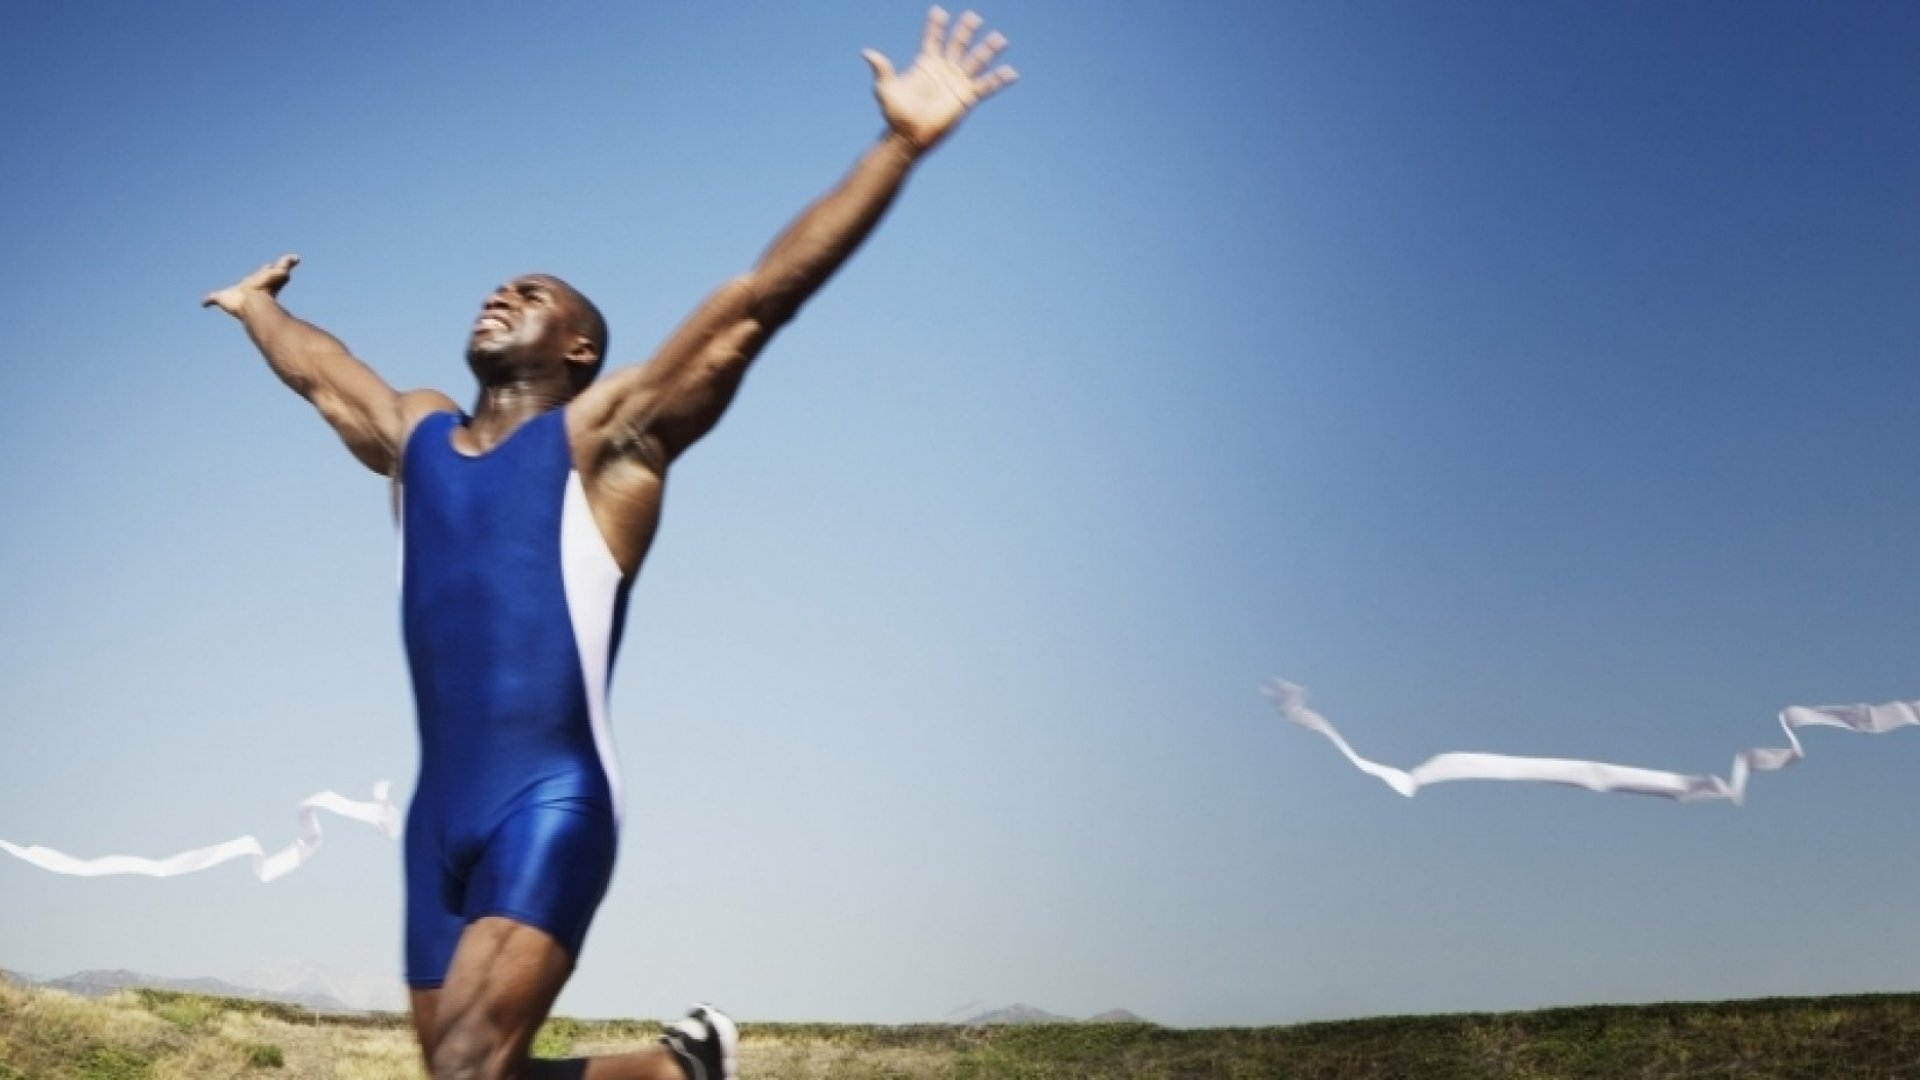 The 13 Drive Factors That Will Accelerate Your Business Success